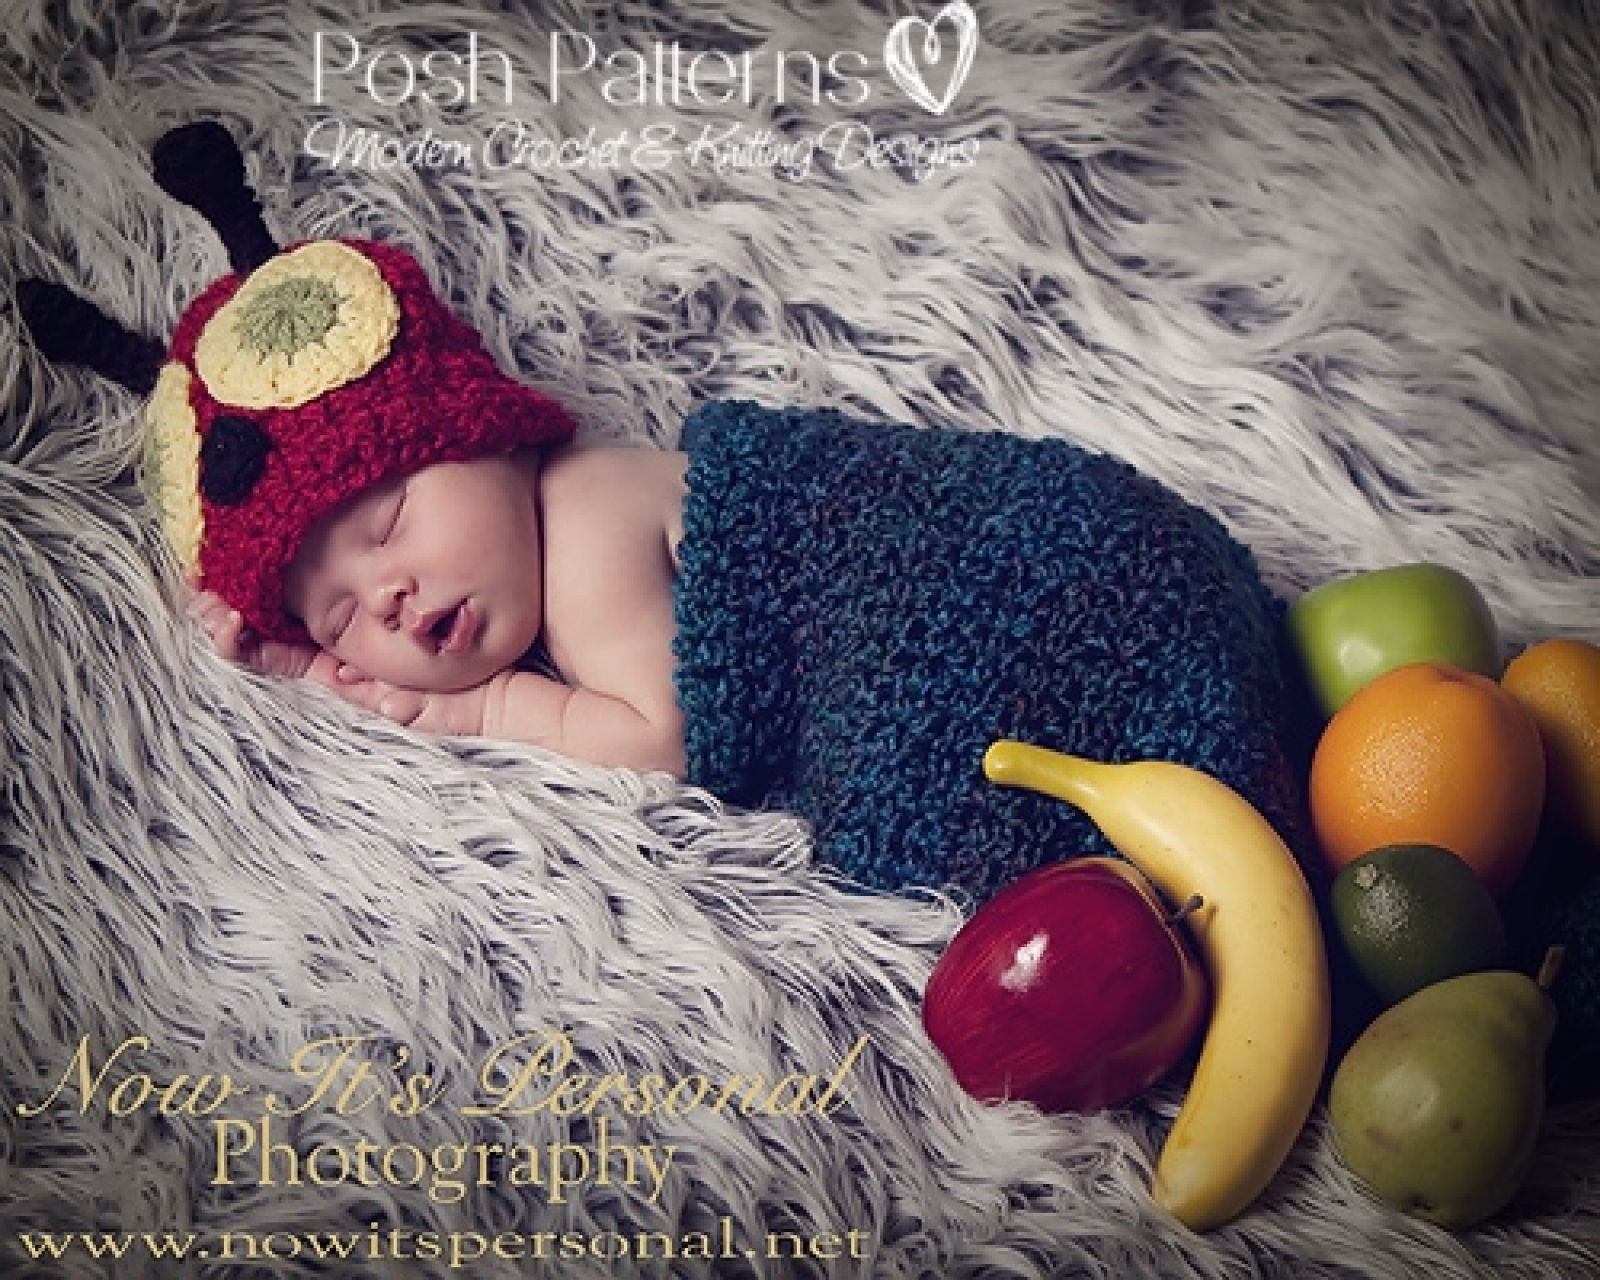 Crochet Patterns Caterpillar Hat And Cocoon Photo Prop